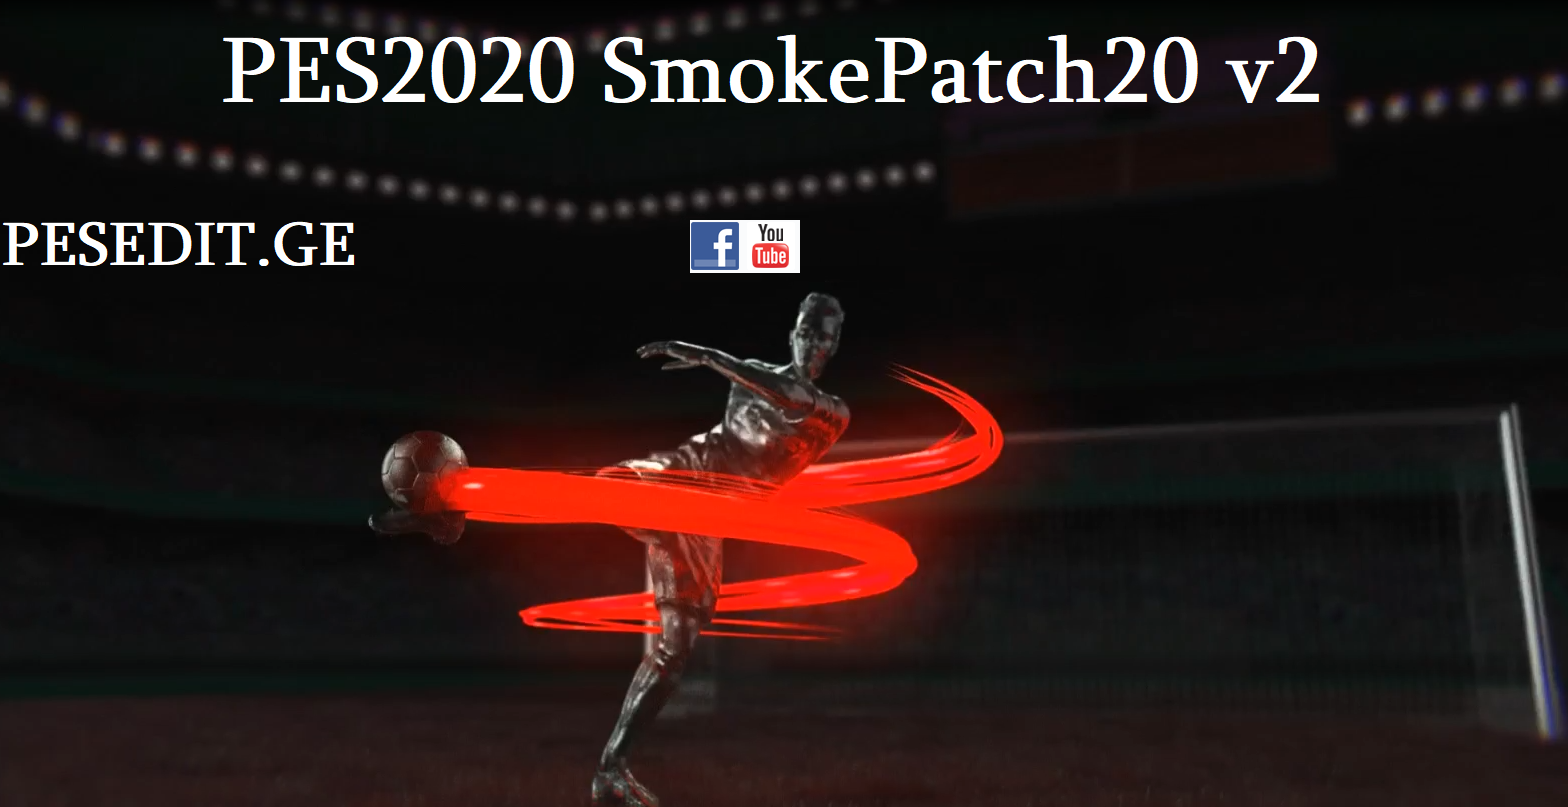 PES2020 SmokePatch20 v2